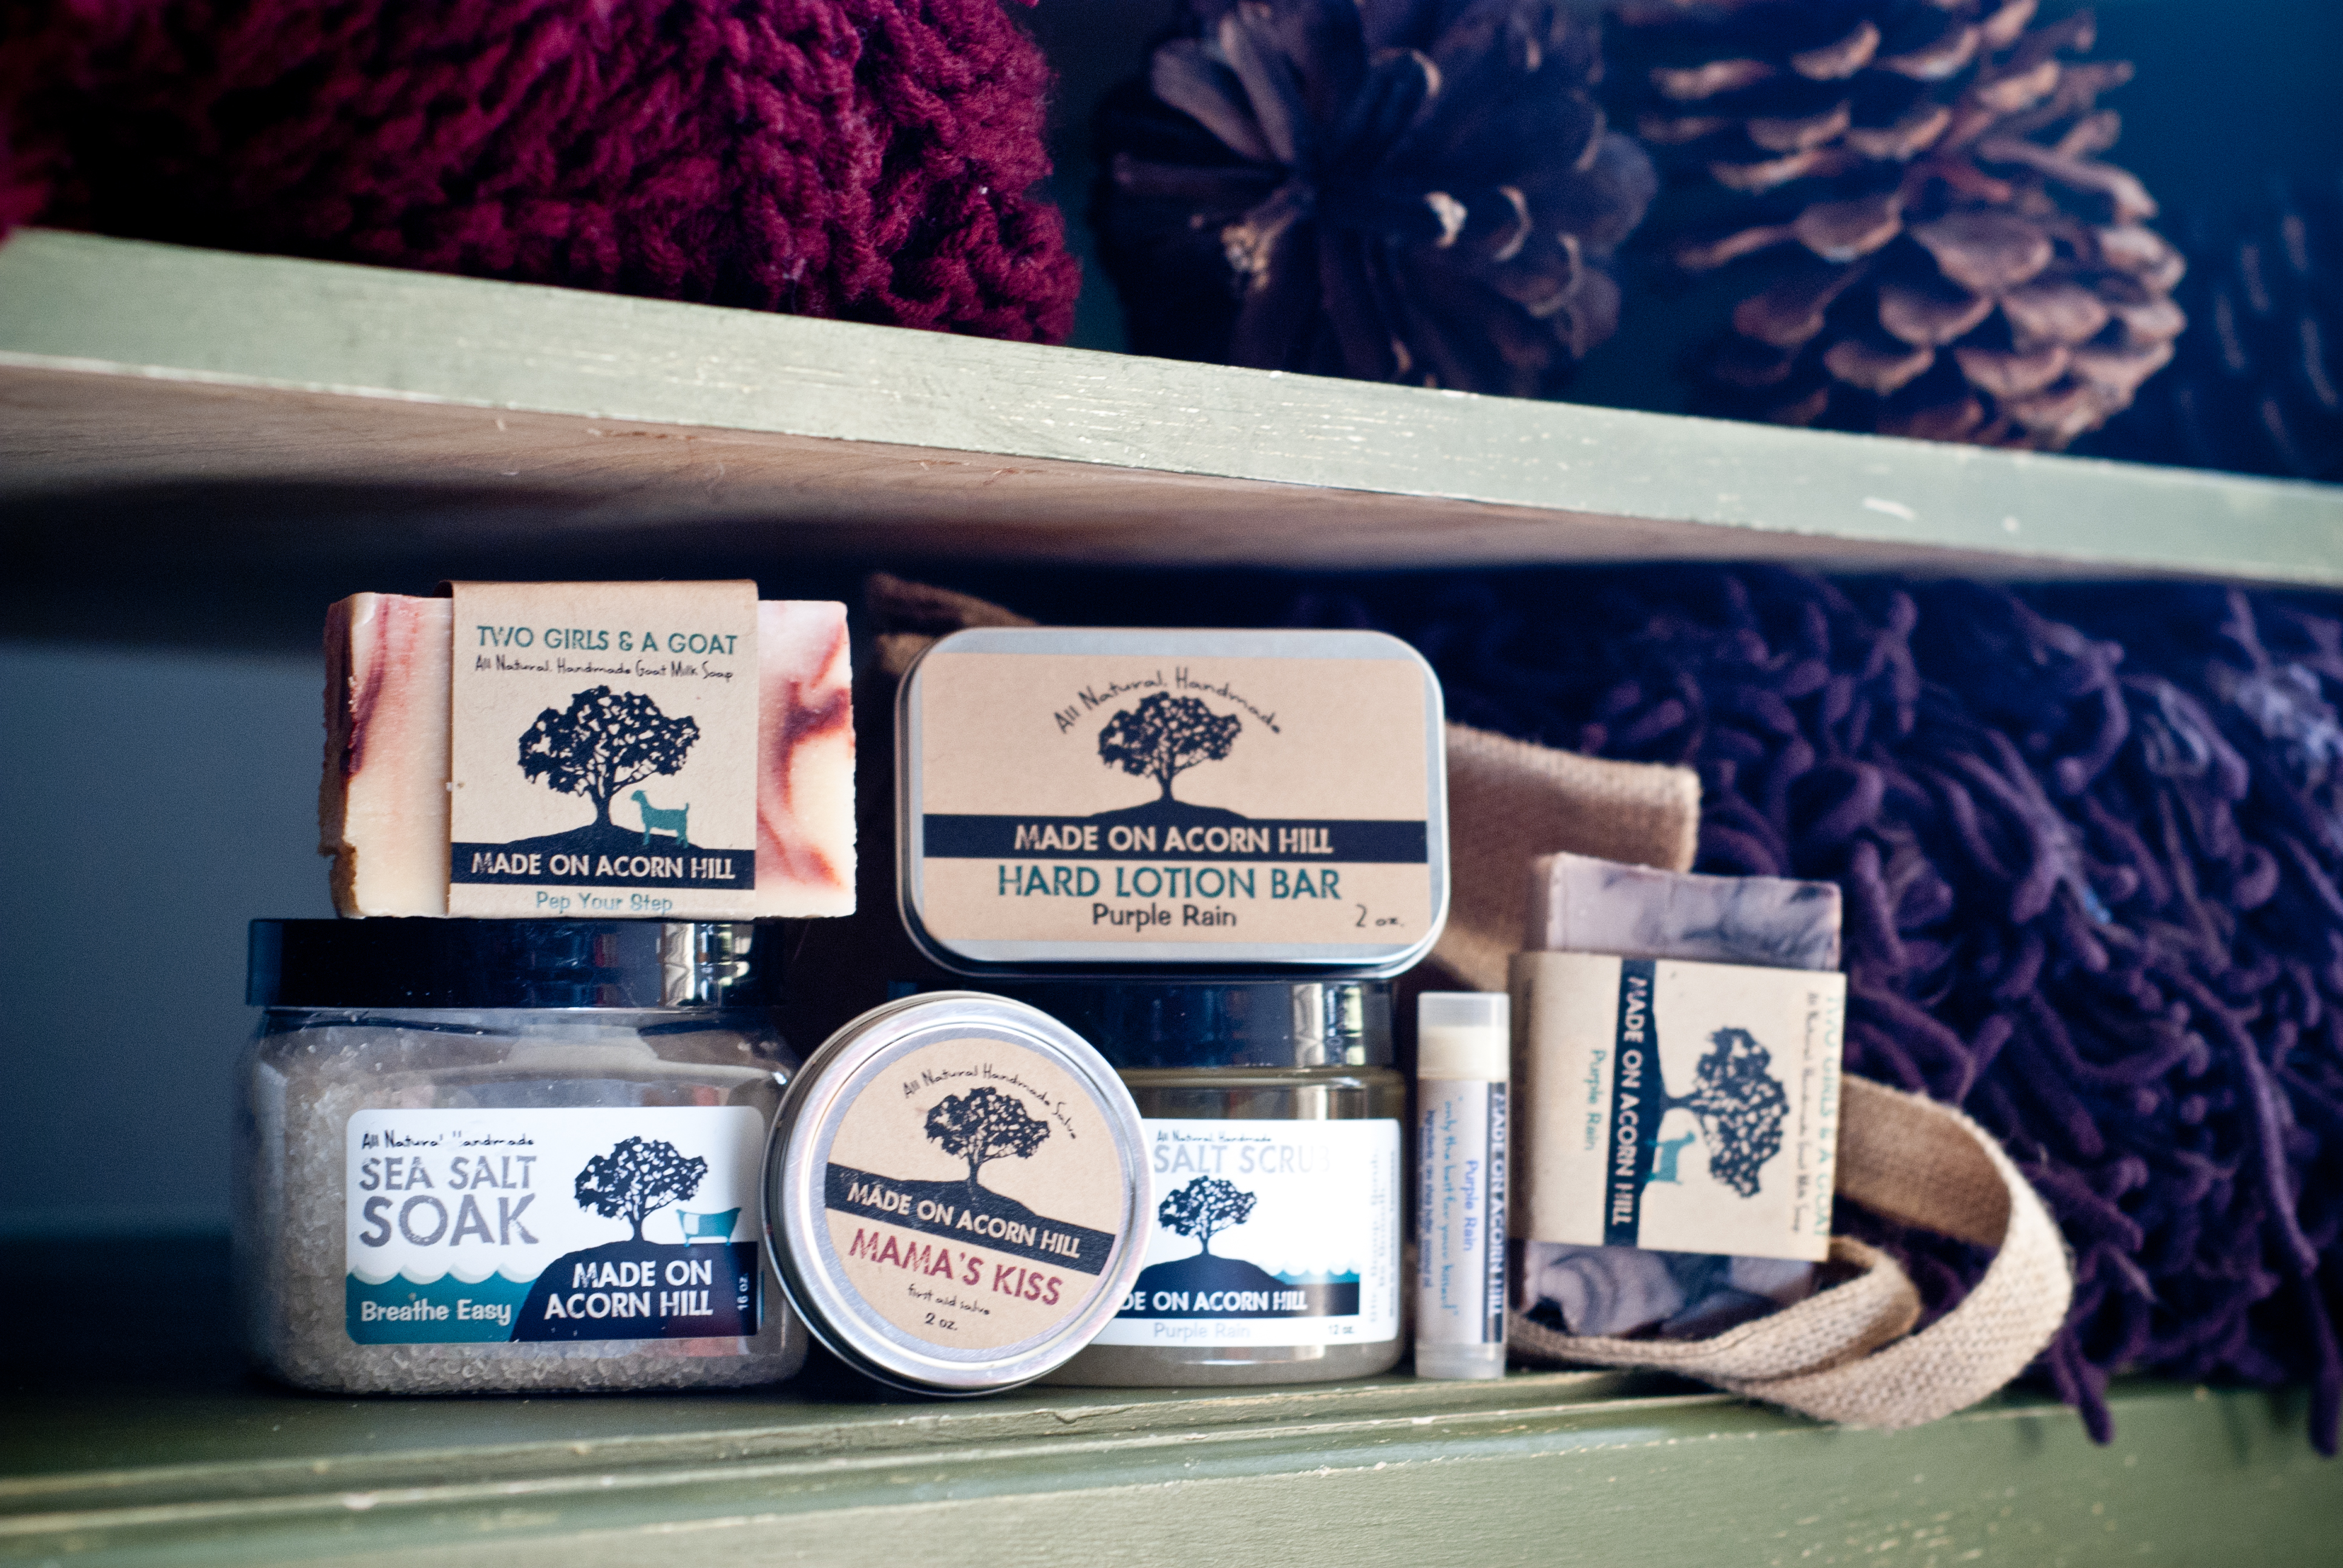 Made on Acorn Hill - a giveaway